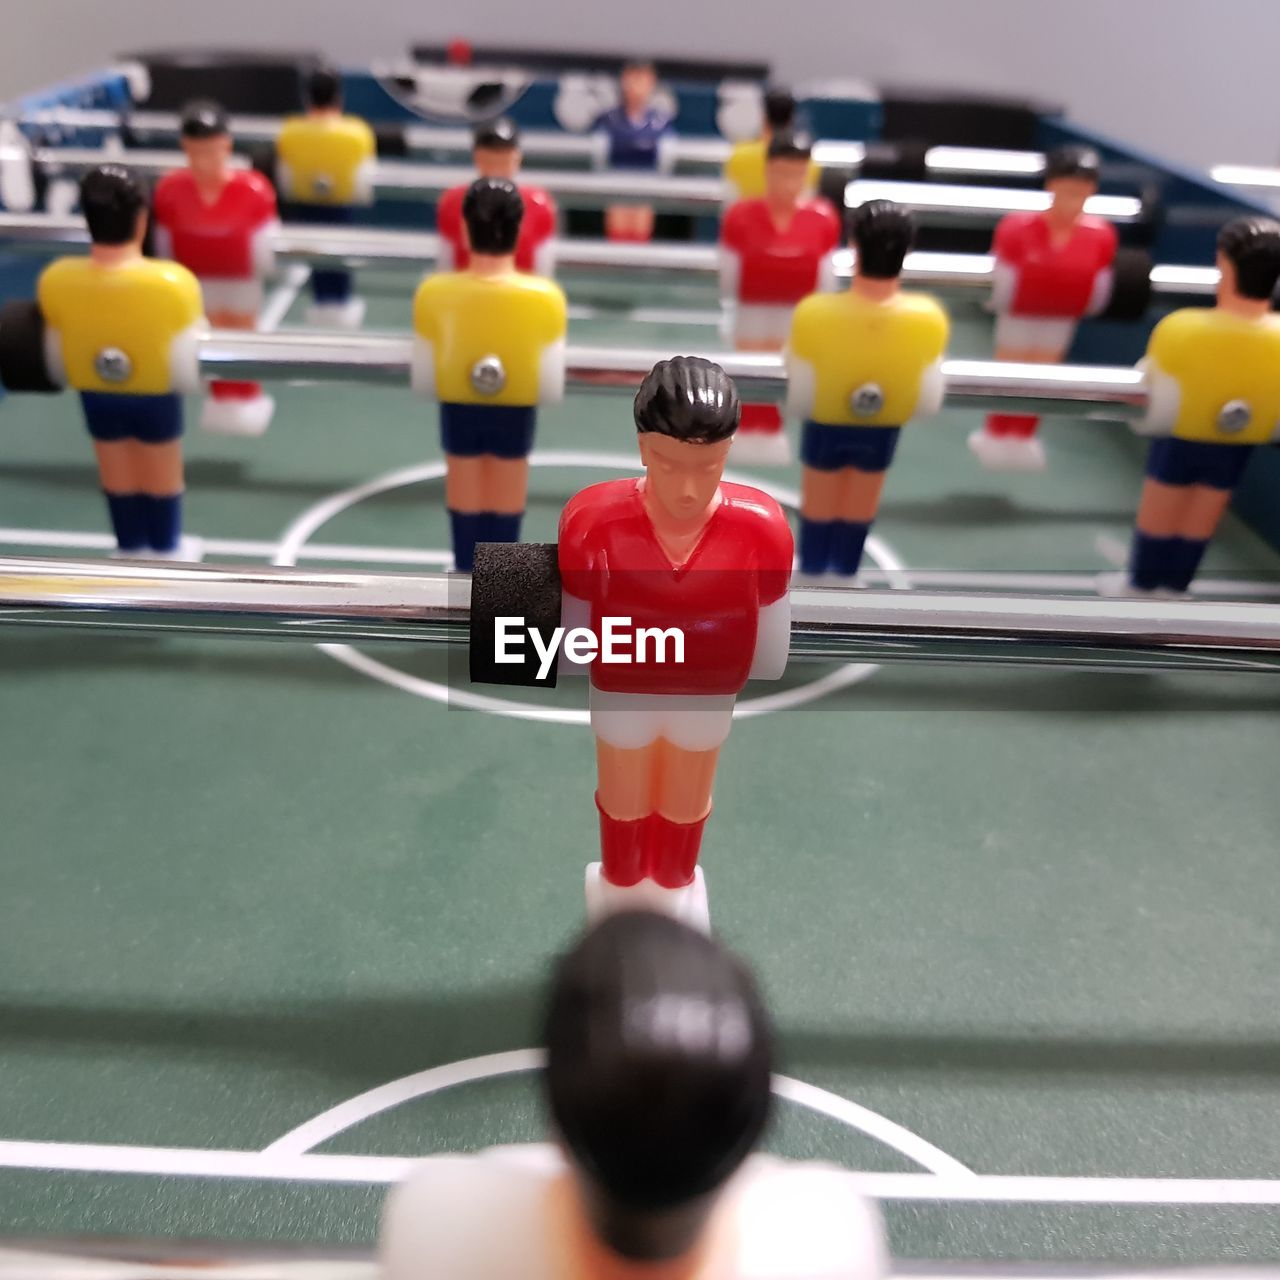 sport, leisure games, competition, soccer, team sport, cooperation, relaxation, leisure activity, male likeness, figurine, teamwork, people, human representation, representation, playing, sports team, indoors, competitive sport, rear view, close-up, sports activity